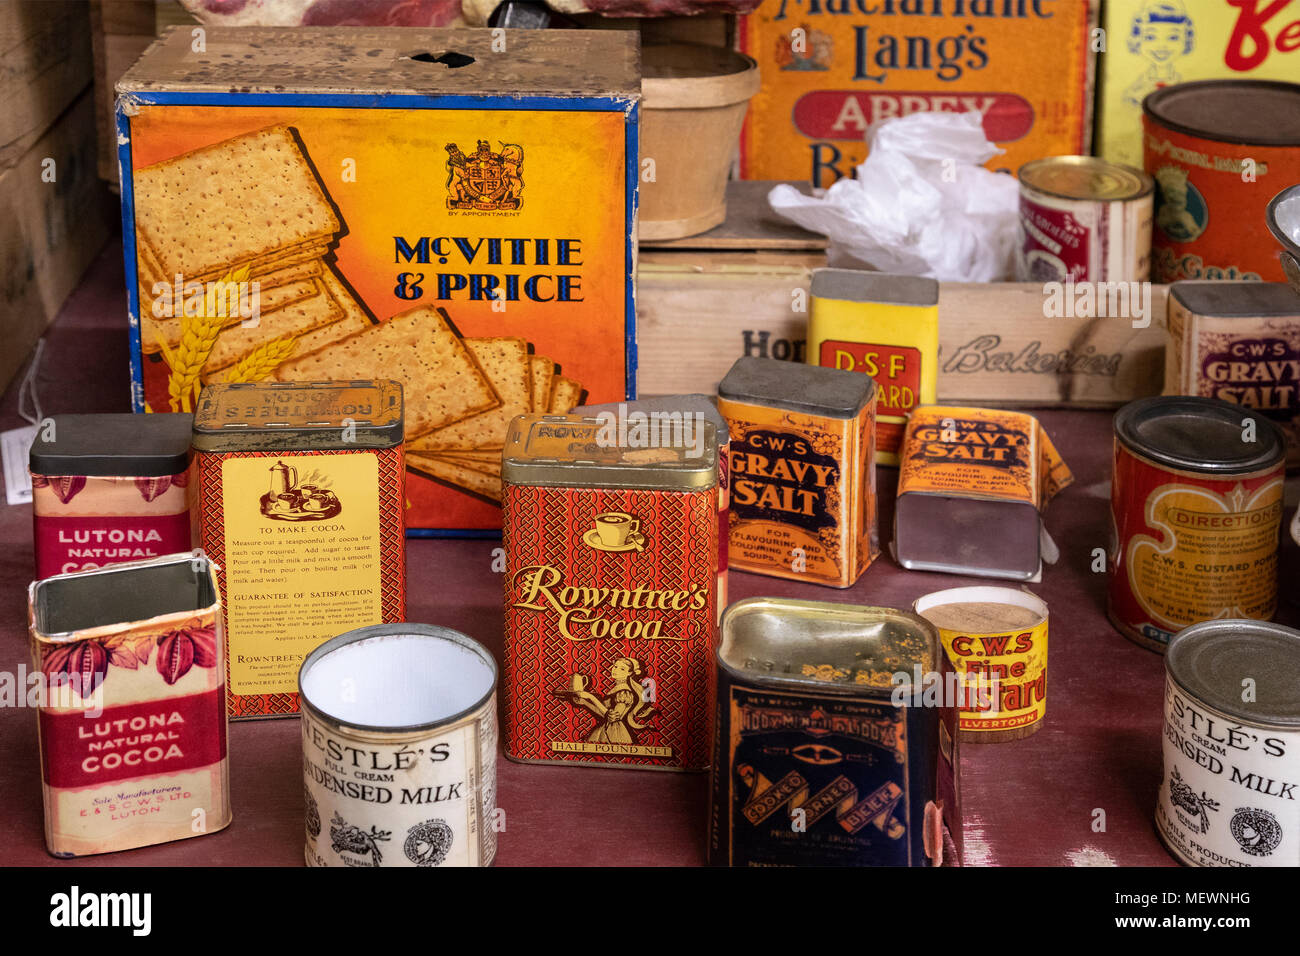 Old food packaging from around the 1950's - Stock Image